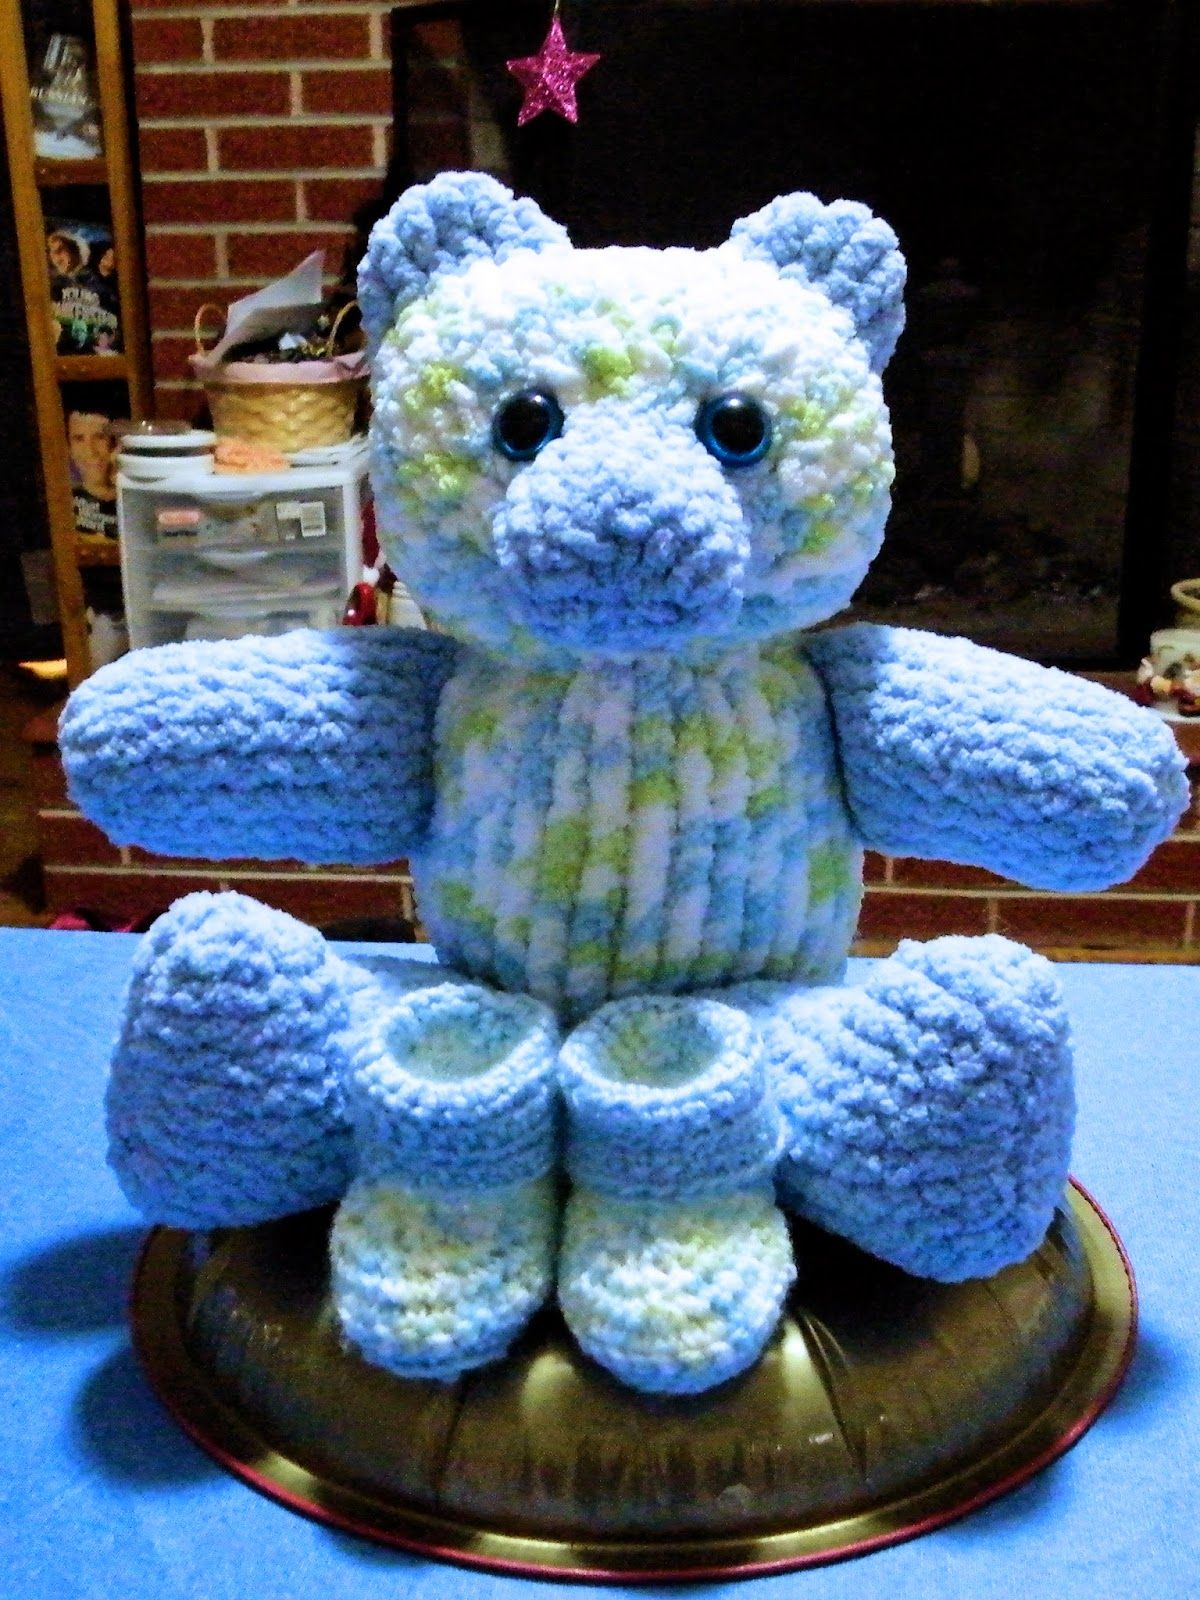 Knitting Stuffed Animals For Beginners : The loom muse how to knit a large teddy bear